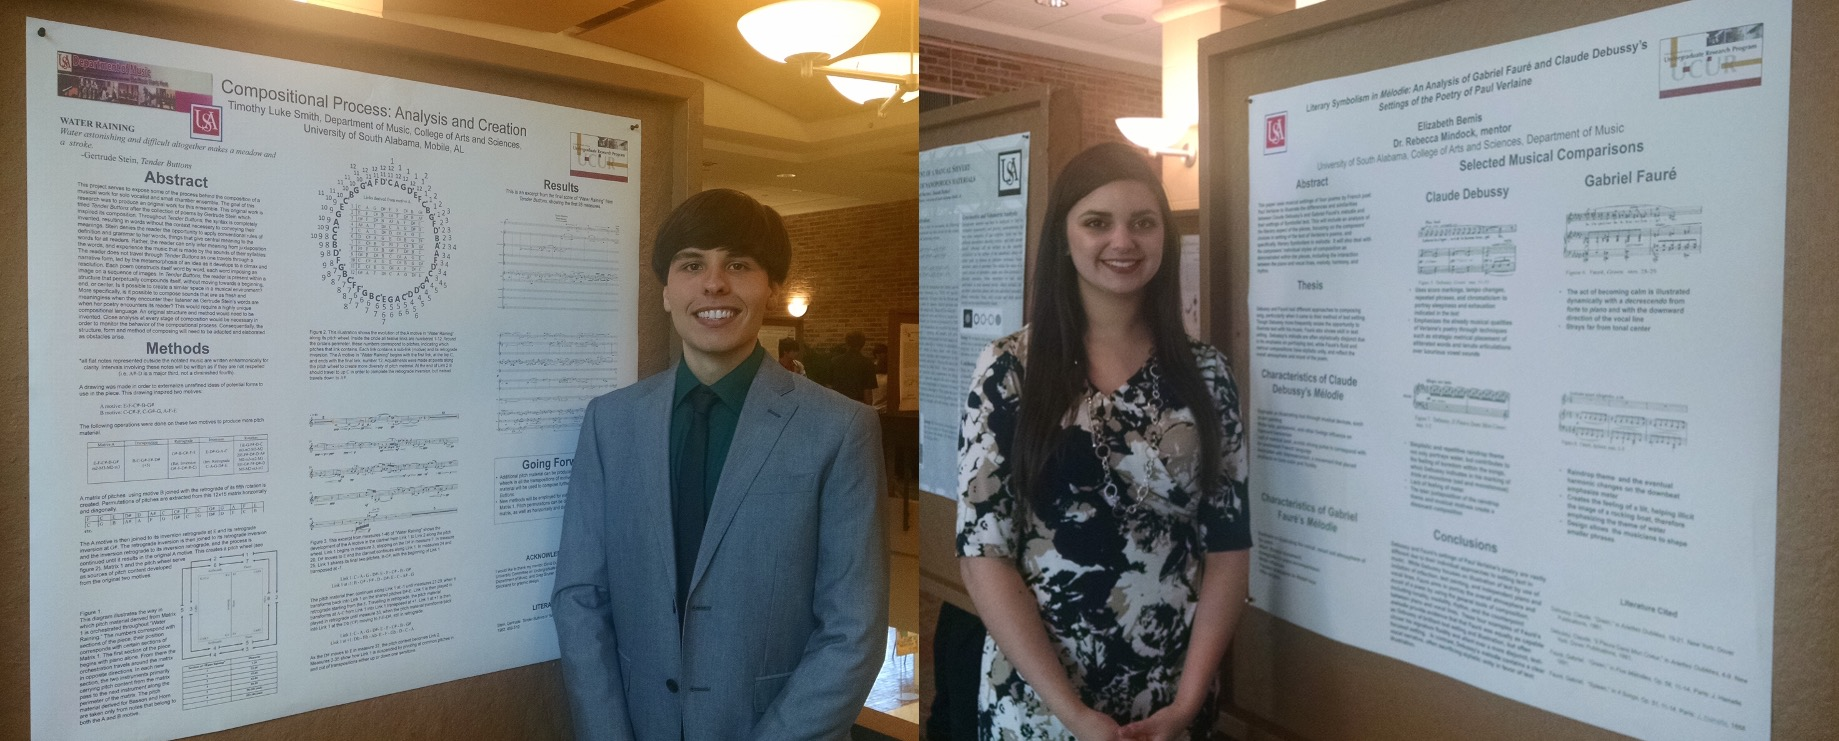 Luke Smith and Elizabeth Bemis each standing in front of their poster's used for Undergraduate Research Program